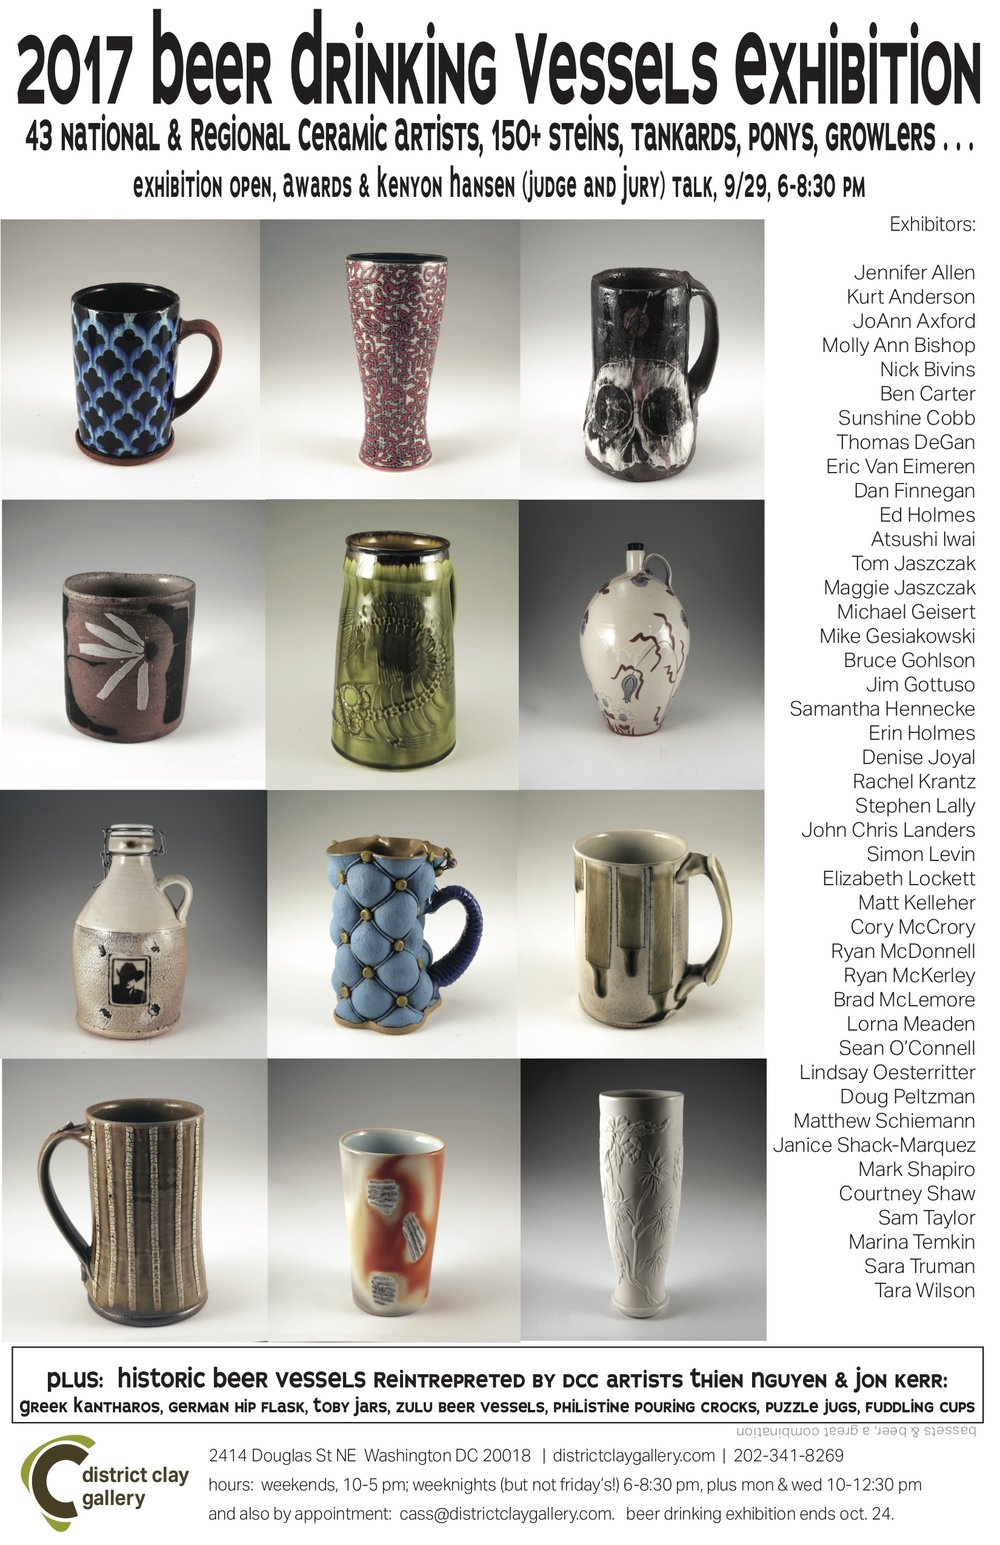 FEATURING 43 NATIONAL AND REGIONAL ARTISTSSEPTEMBER 2017 - BEER VESSELS